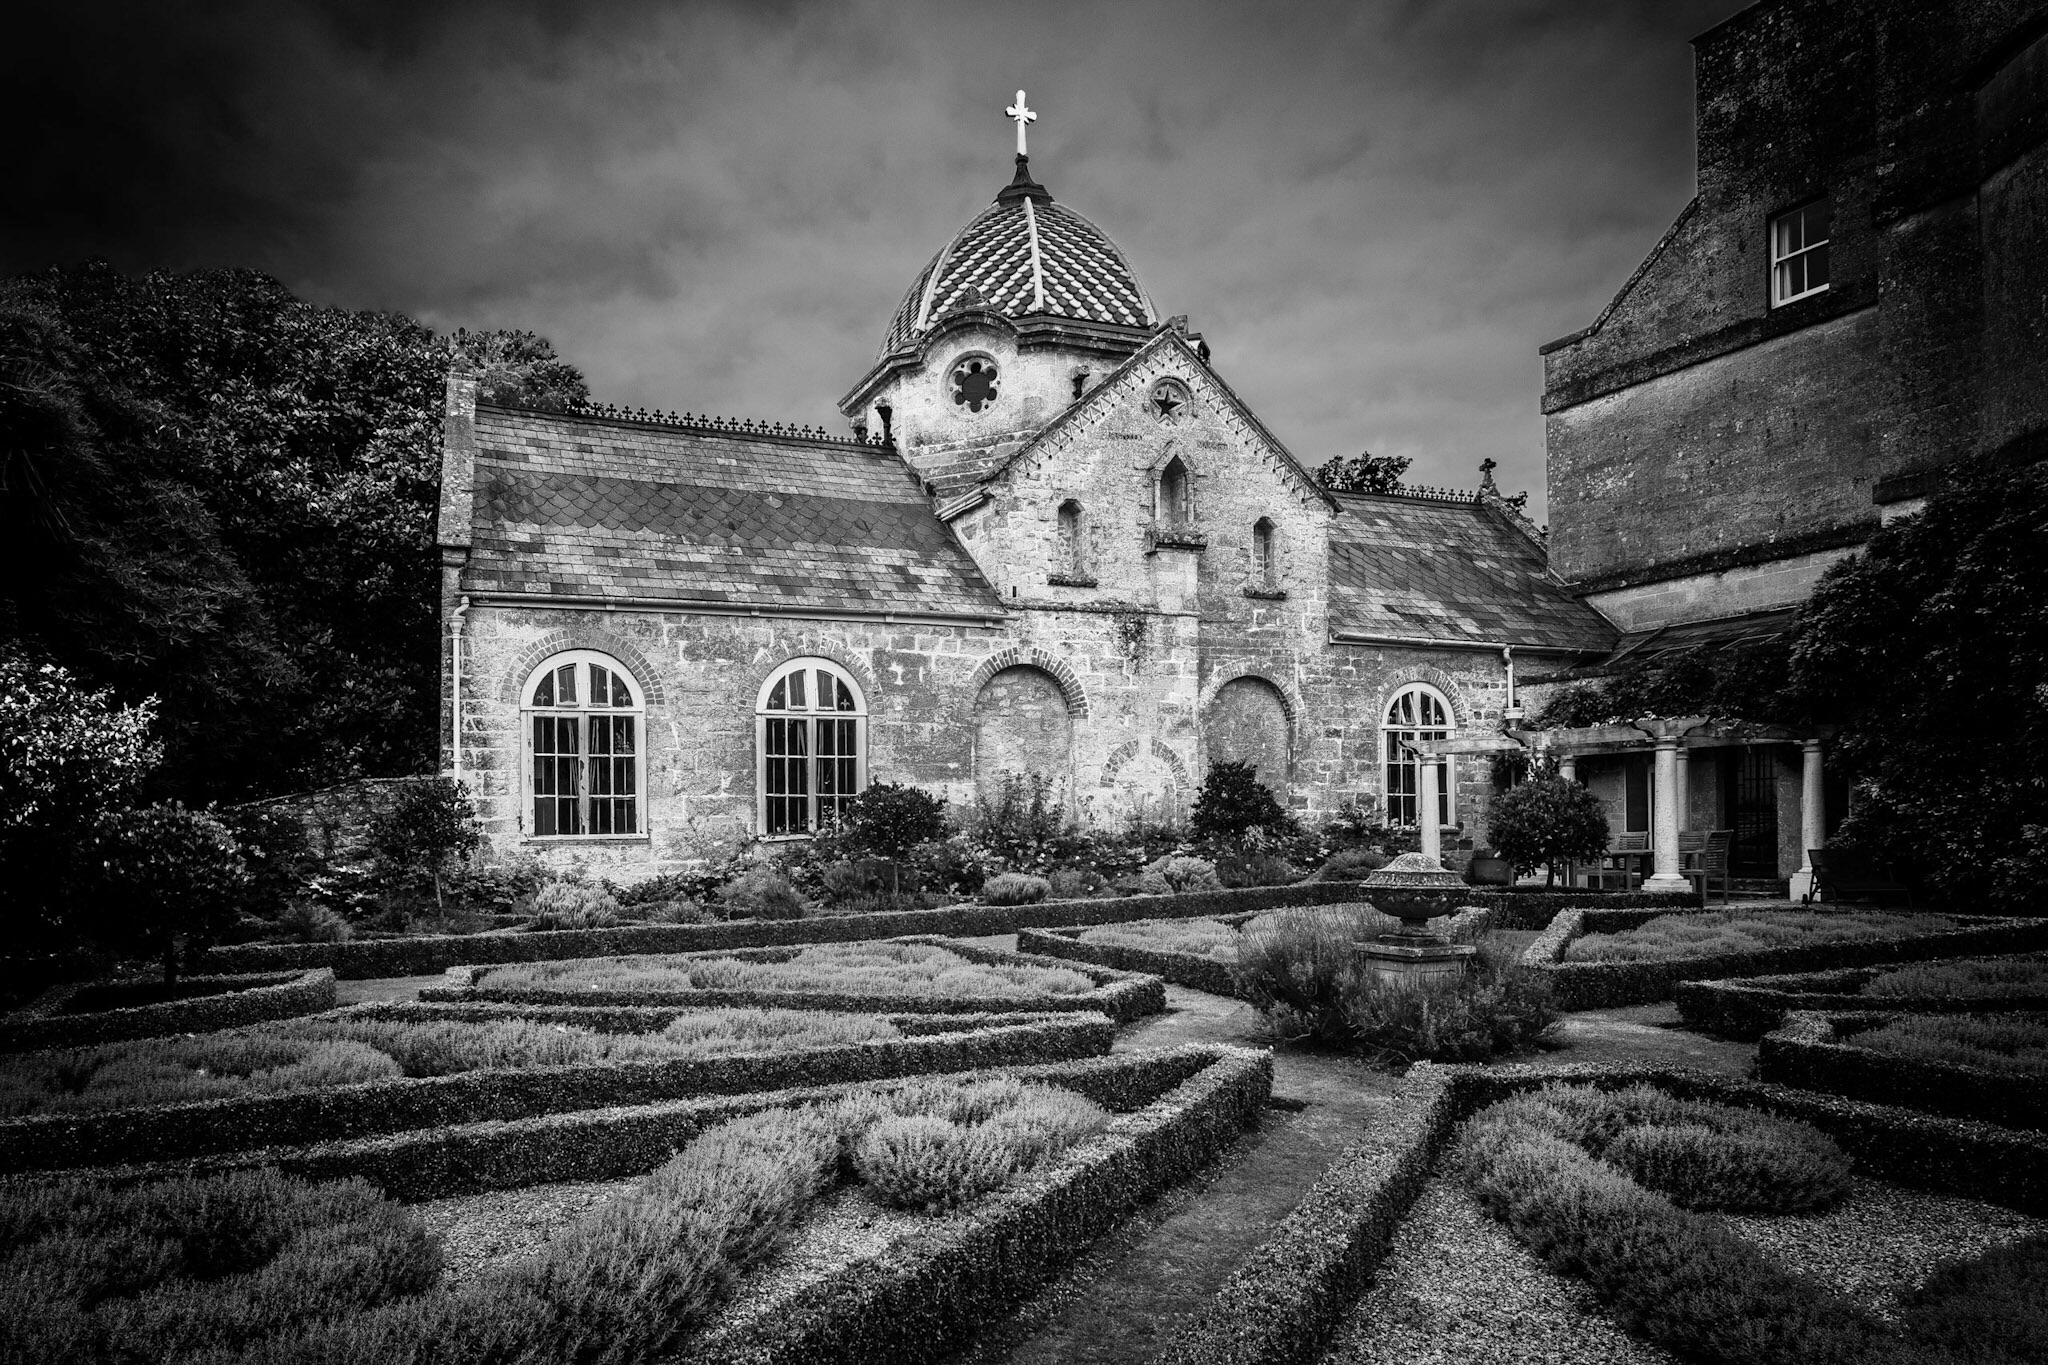 Back to one of my favourite places in West Dorset. Check out the roof then look at the next image.